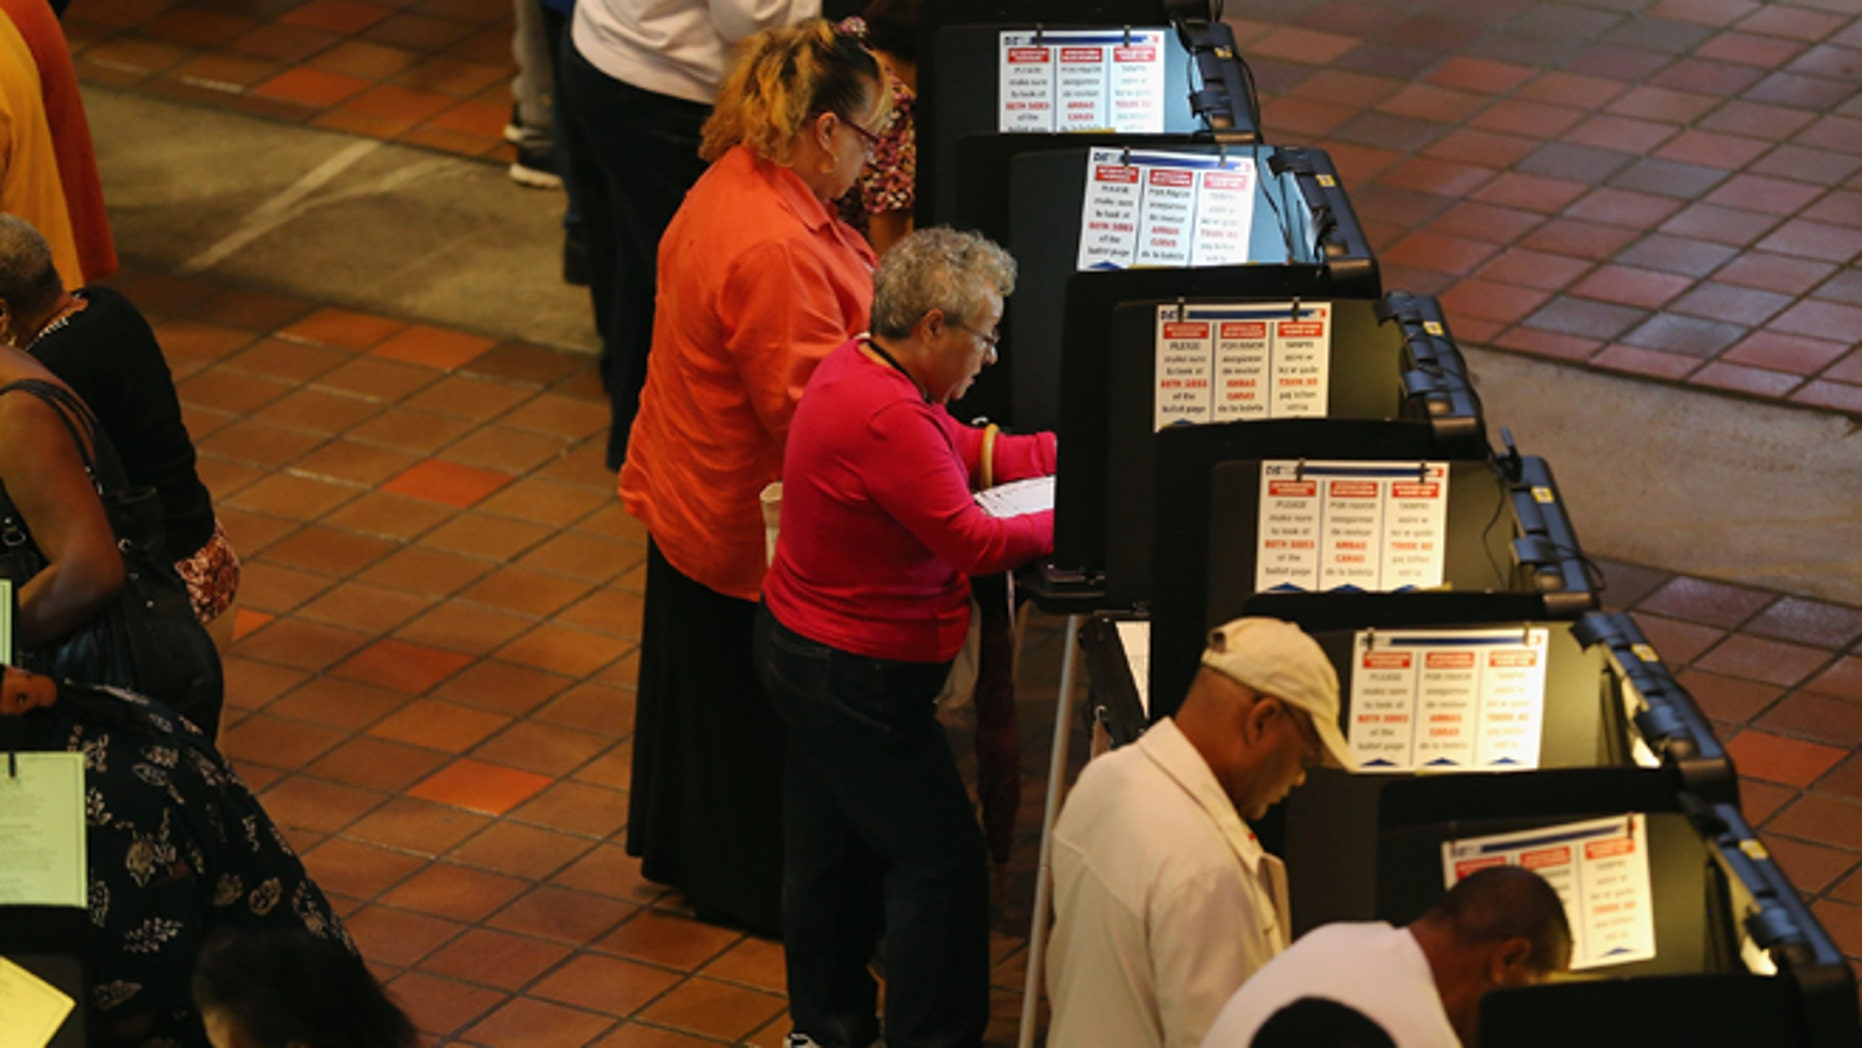 MIAMI, FL - OCTOBER 27:  Early voters fill out their ballots as they cast their vote in the presidential election on the first day of early voting, at the Stephen P. Clark Government Center on October 27, 2012 in Miami, Florida. Early voting in one of the important swing states is held for eight straight 12-hour days, leading up to the November 6 general election.  (Photo by Joe Raedle/Getty Images)